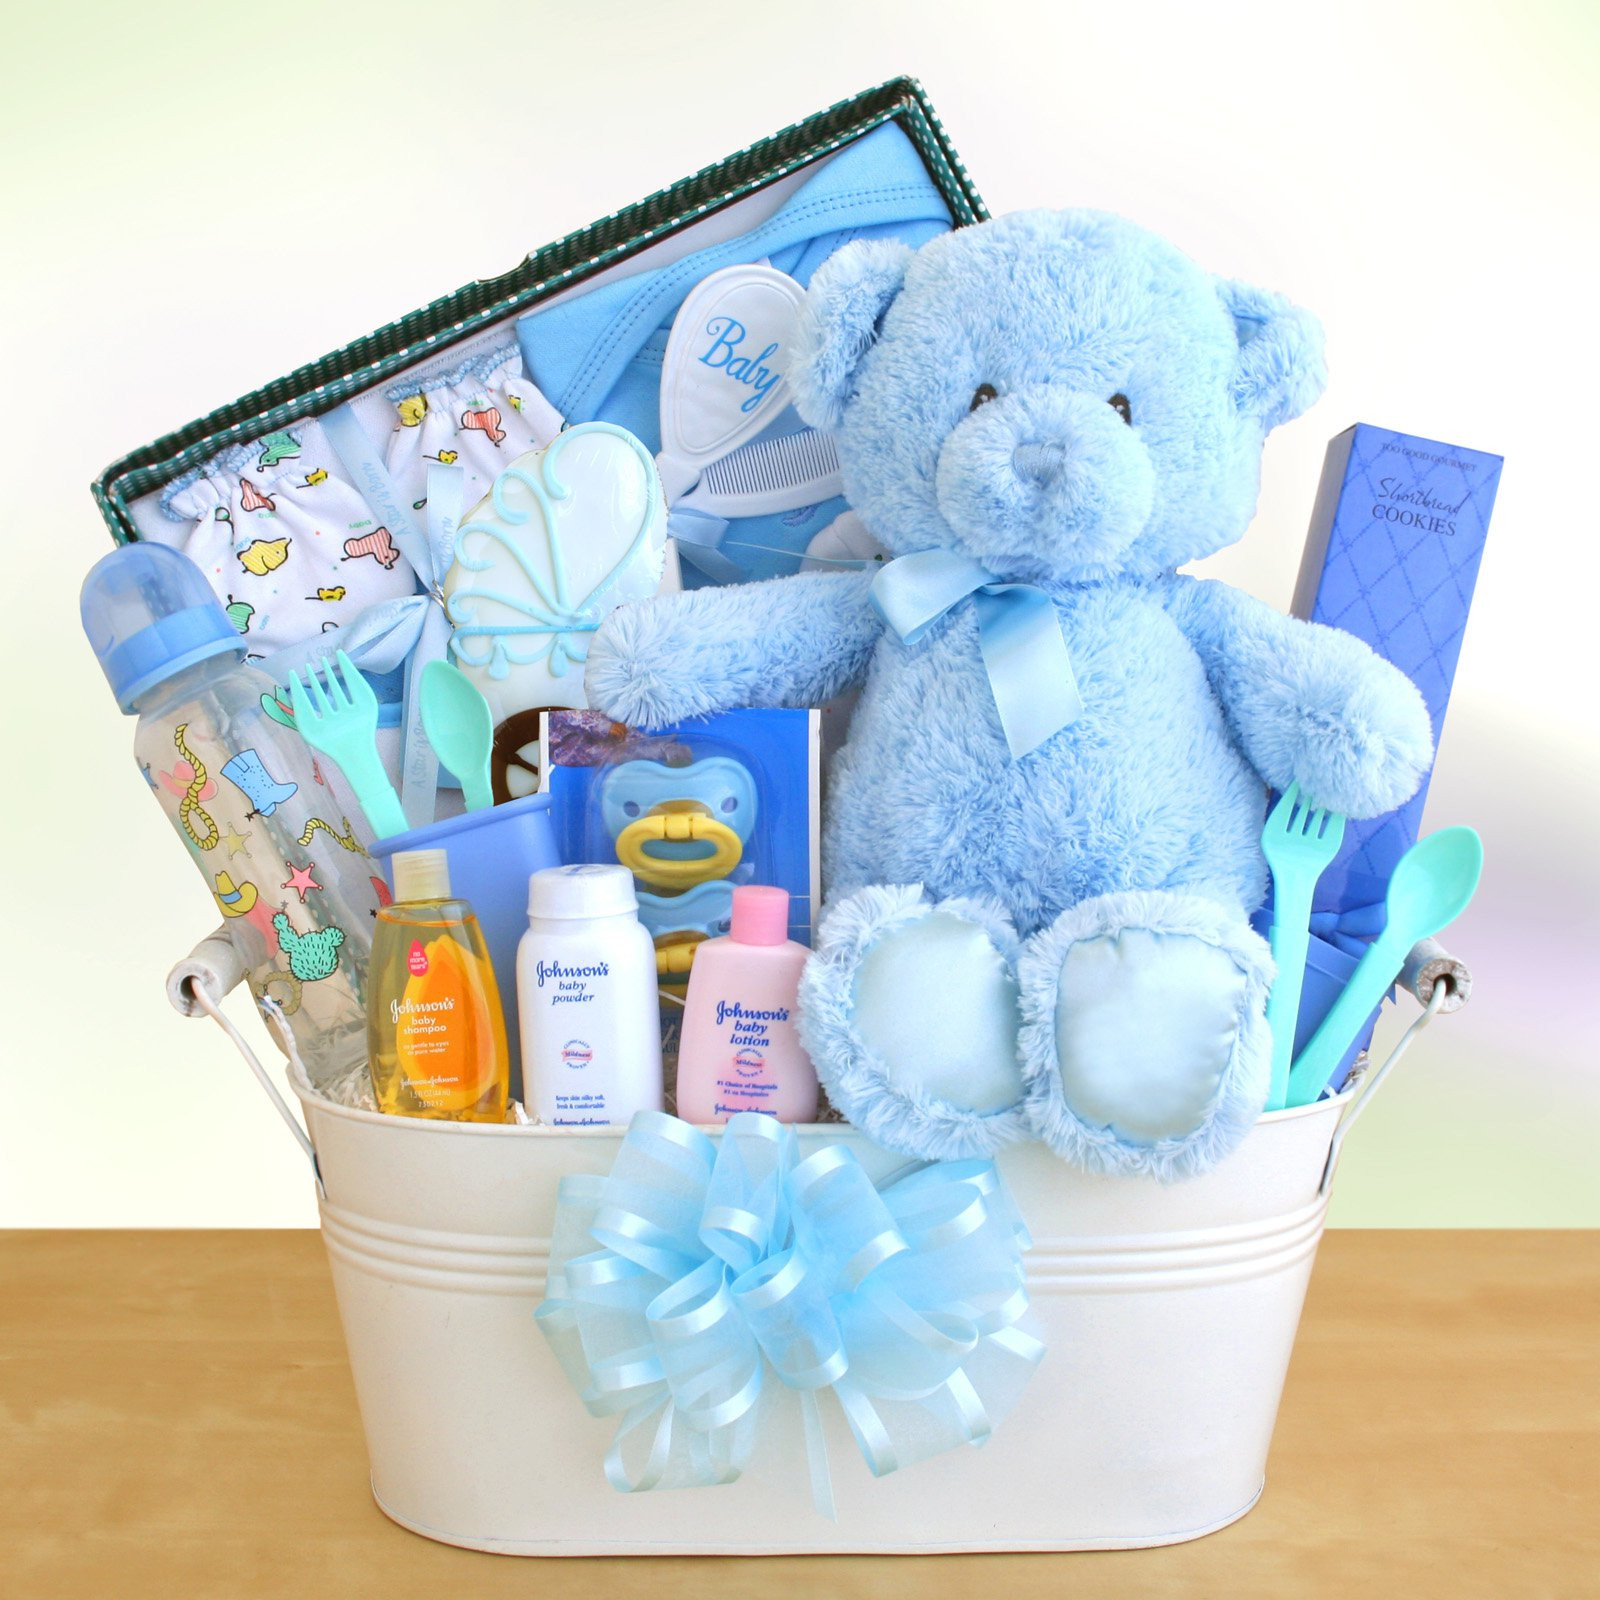 Best ideas about Boy Baby Shower Gift Ideas . Save or Pin New Arrival Baby Boy Gift Basket Gift Baskets by Now.